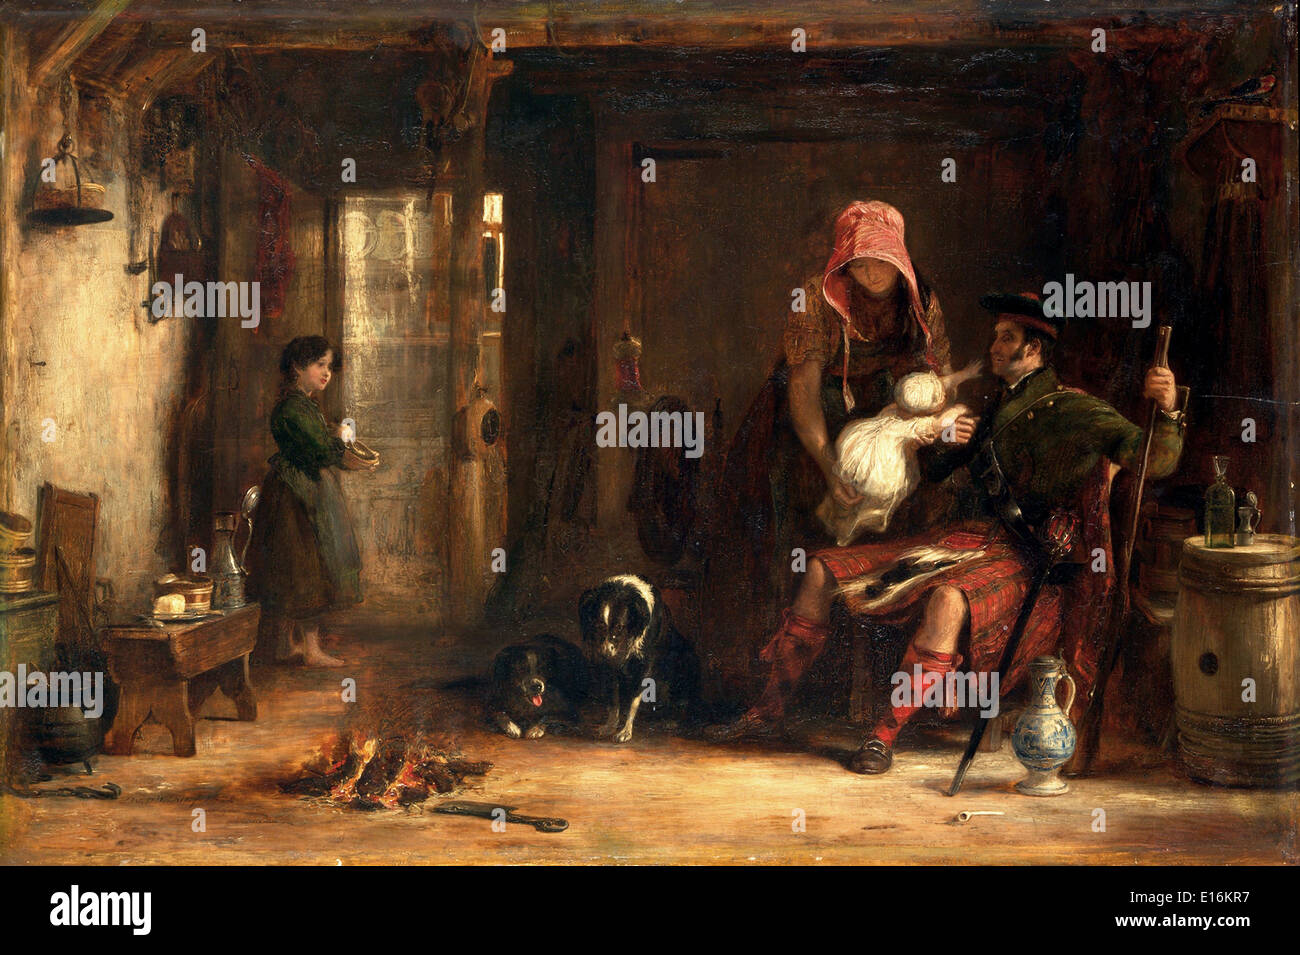 The Highland Family by Sir David Wilkie, 1824 - Stock Image